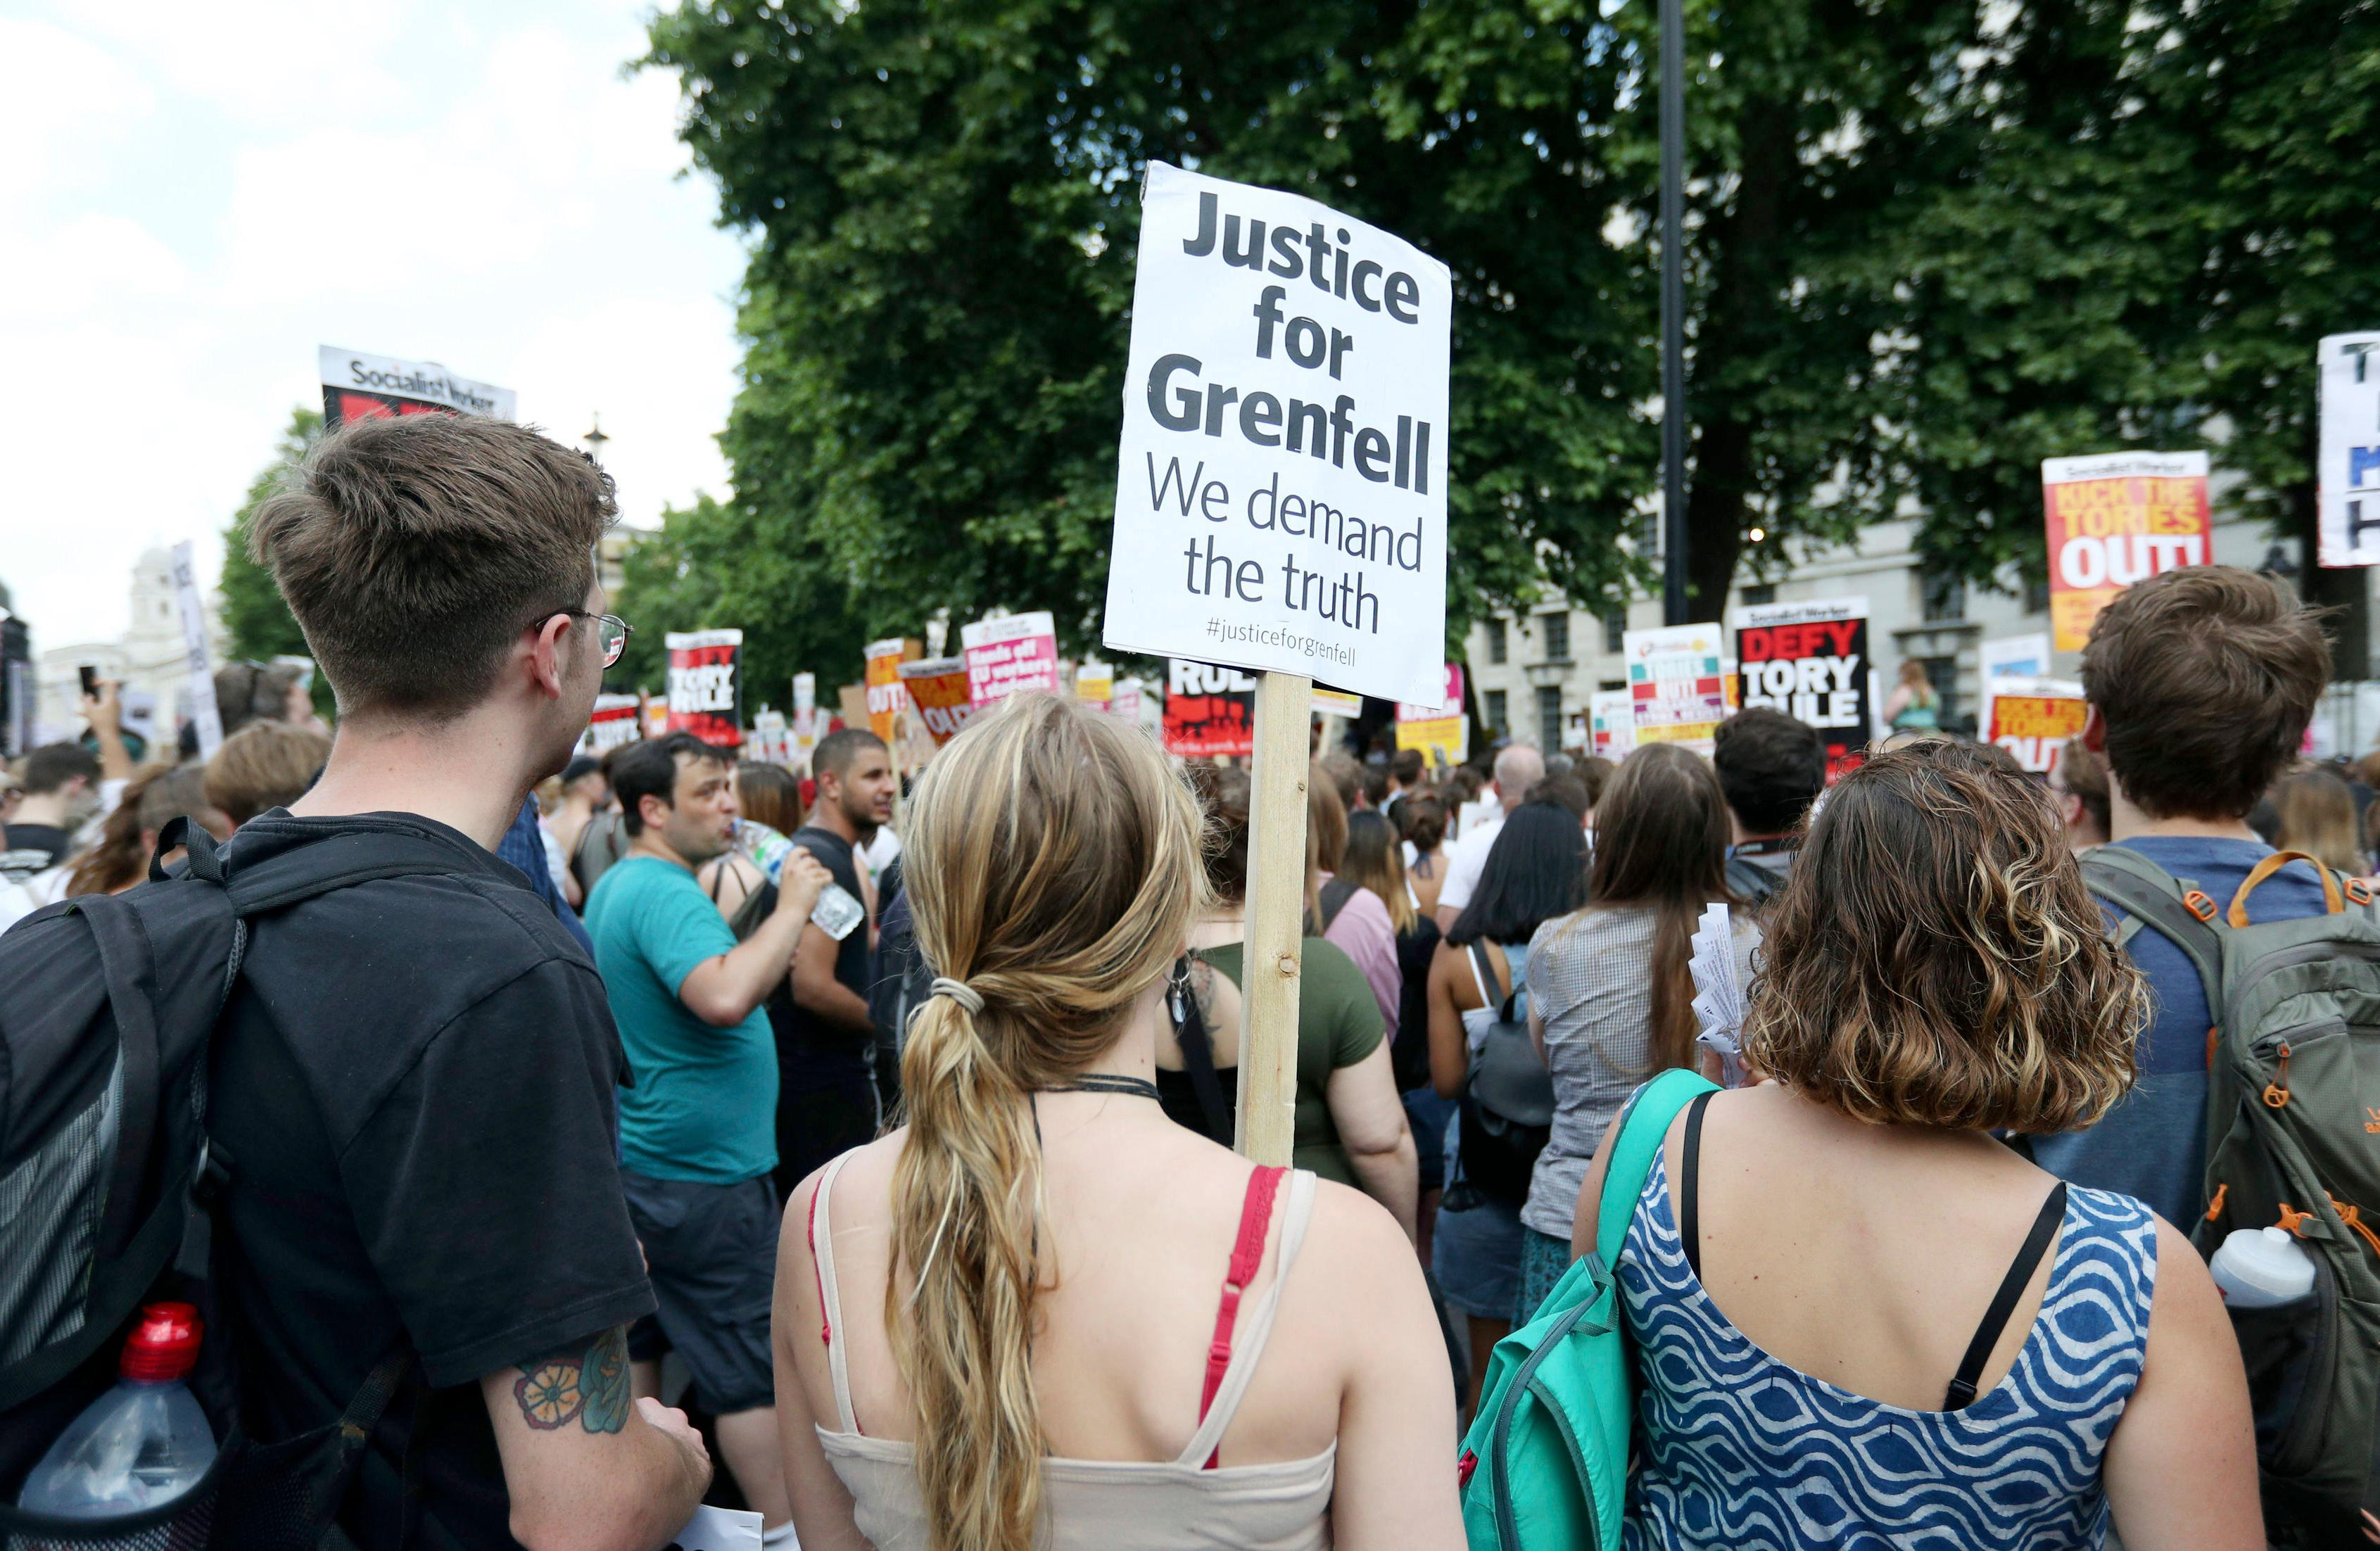 People gather in Whitehall, to protest after the fire at Grenfell Tower which engulfed the 24 storey building on Wednesday, in London, Saturday June 17, 2017. More than 3 million pounds ($3.8 million) has been raised for victims of the London high-rise fire that has killed at least 30 people and left dozens homeless. (?Jonathan Brady/PA via AP)